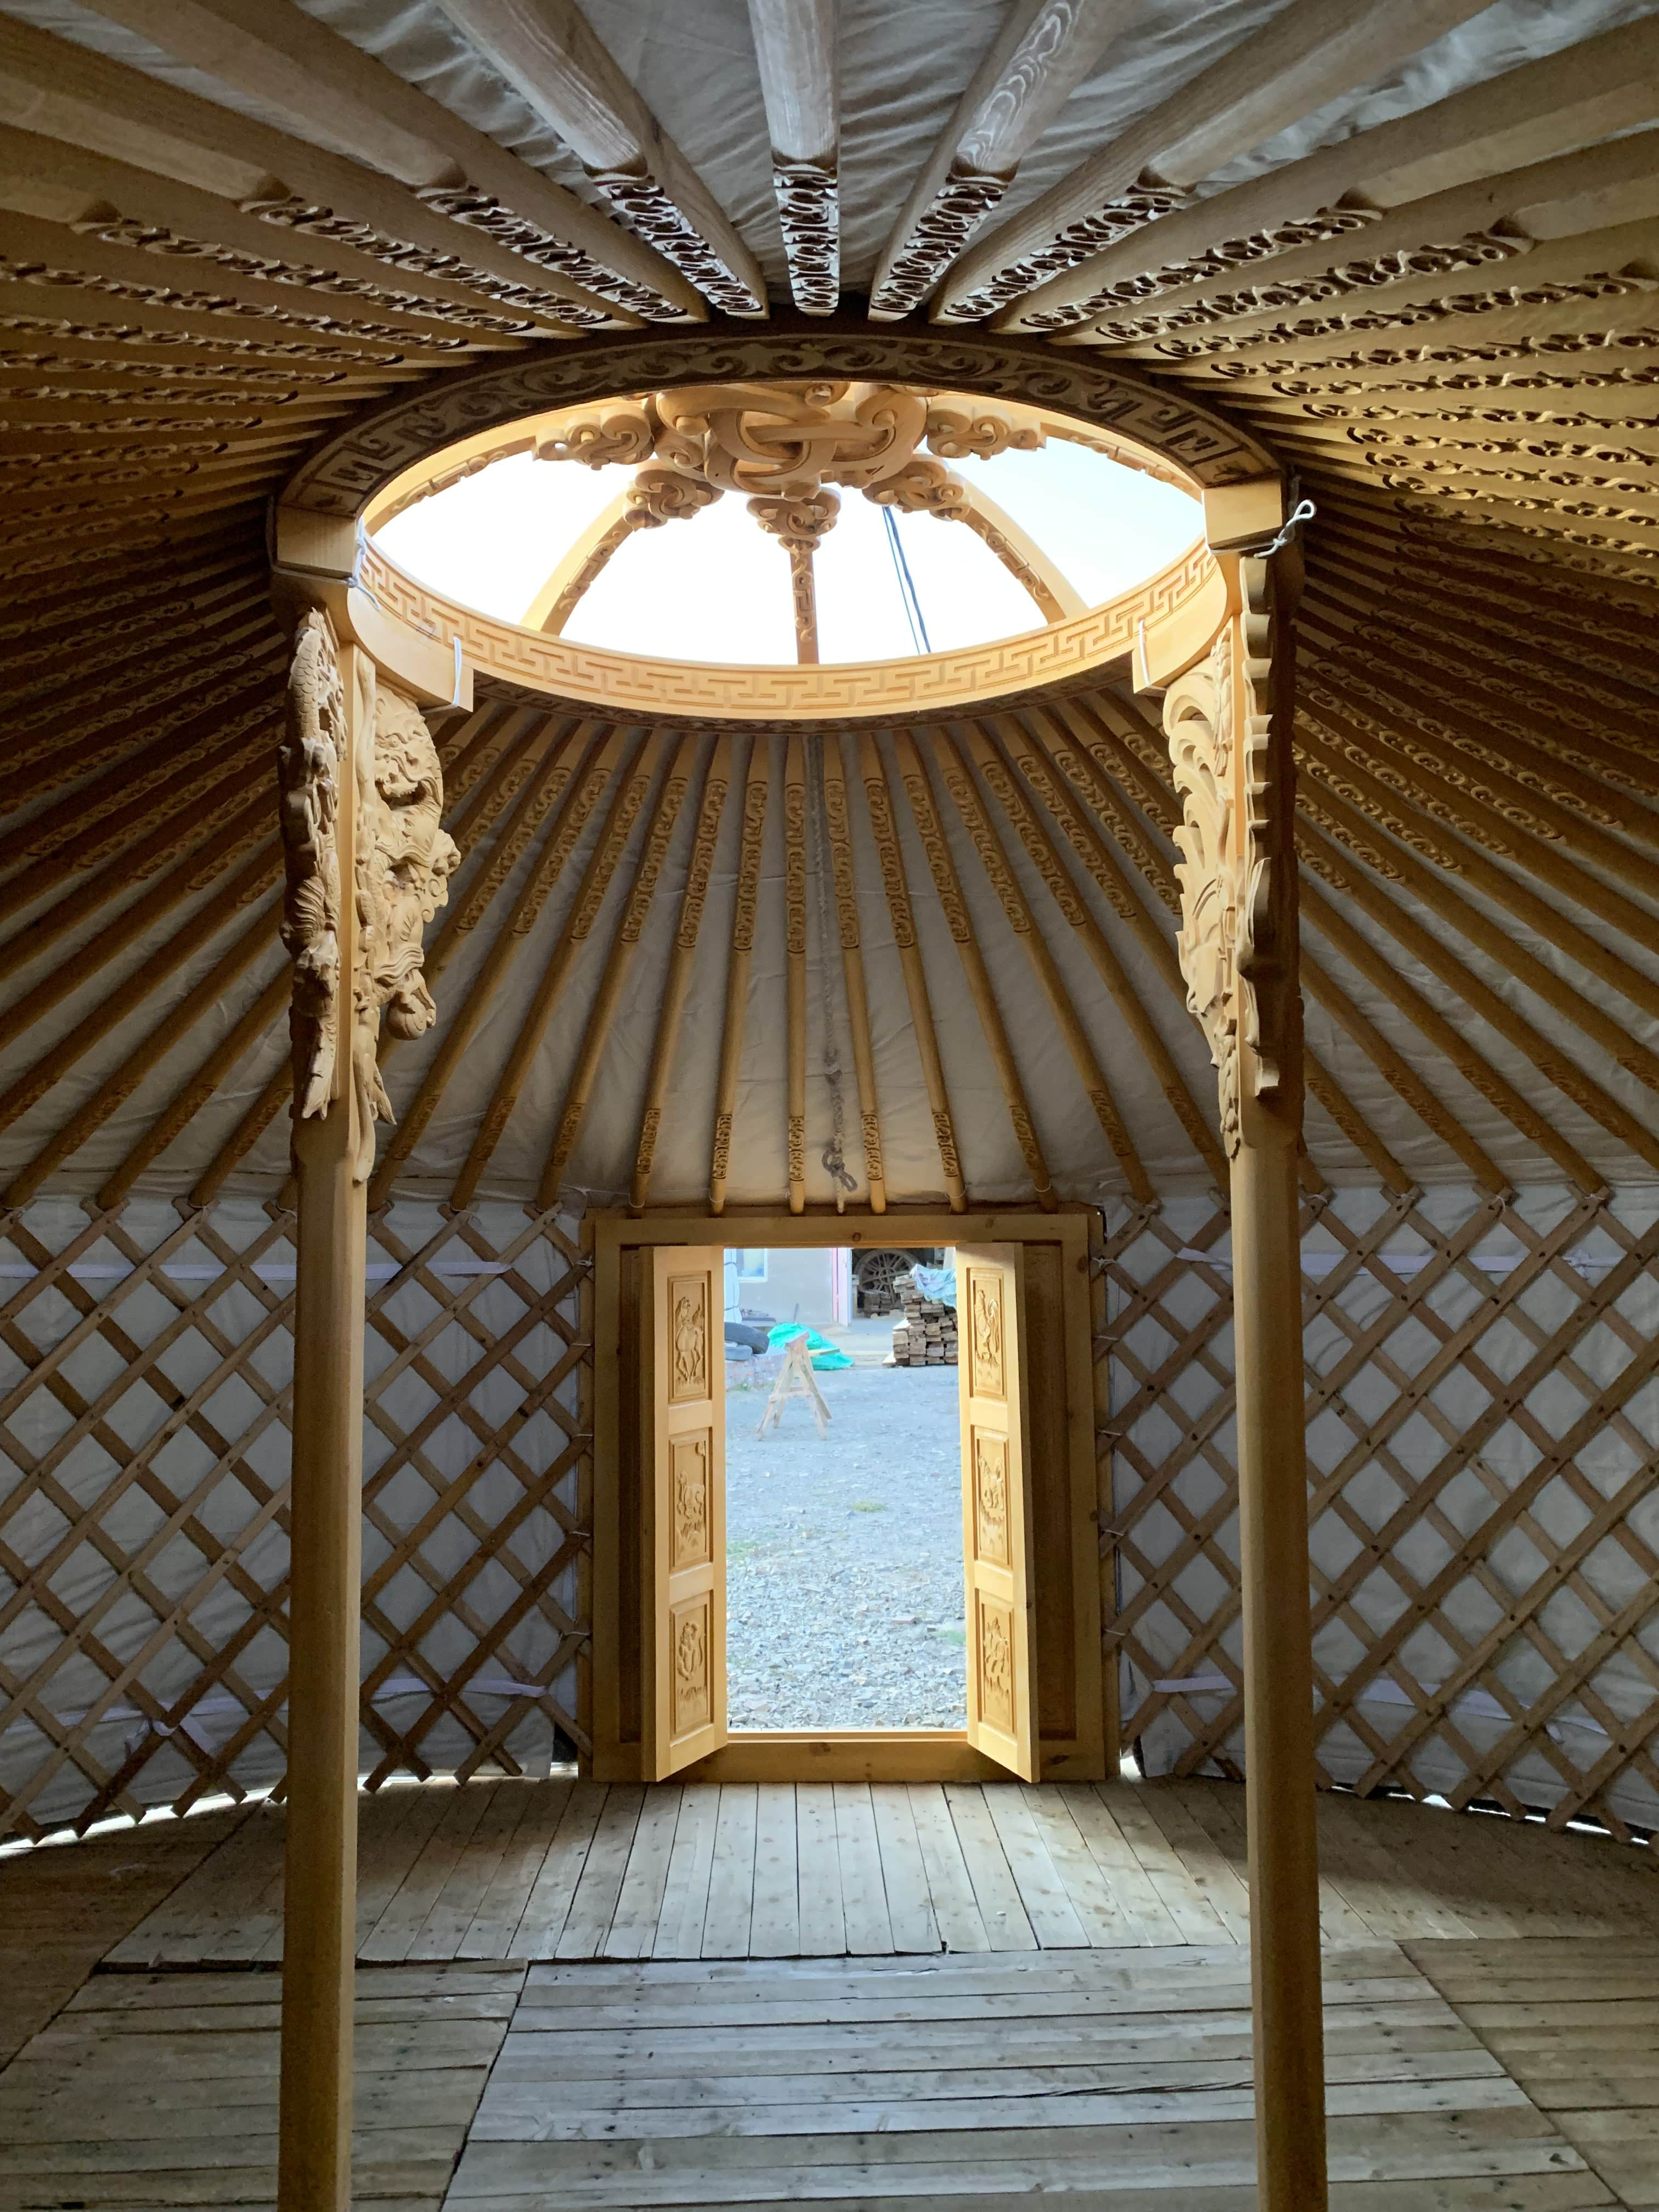 Inside a yurt with a finely carved roof